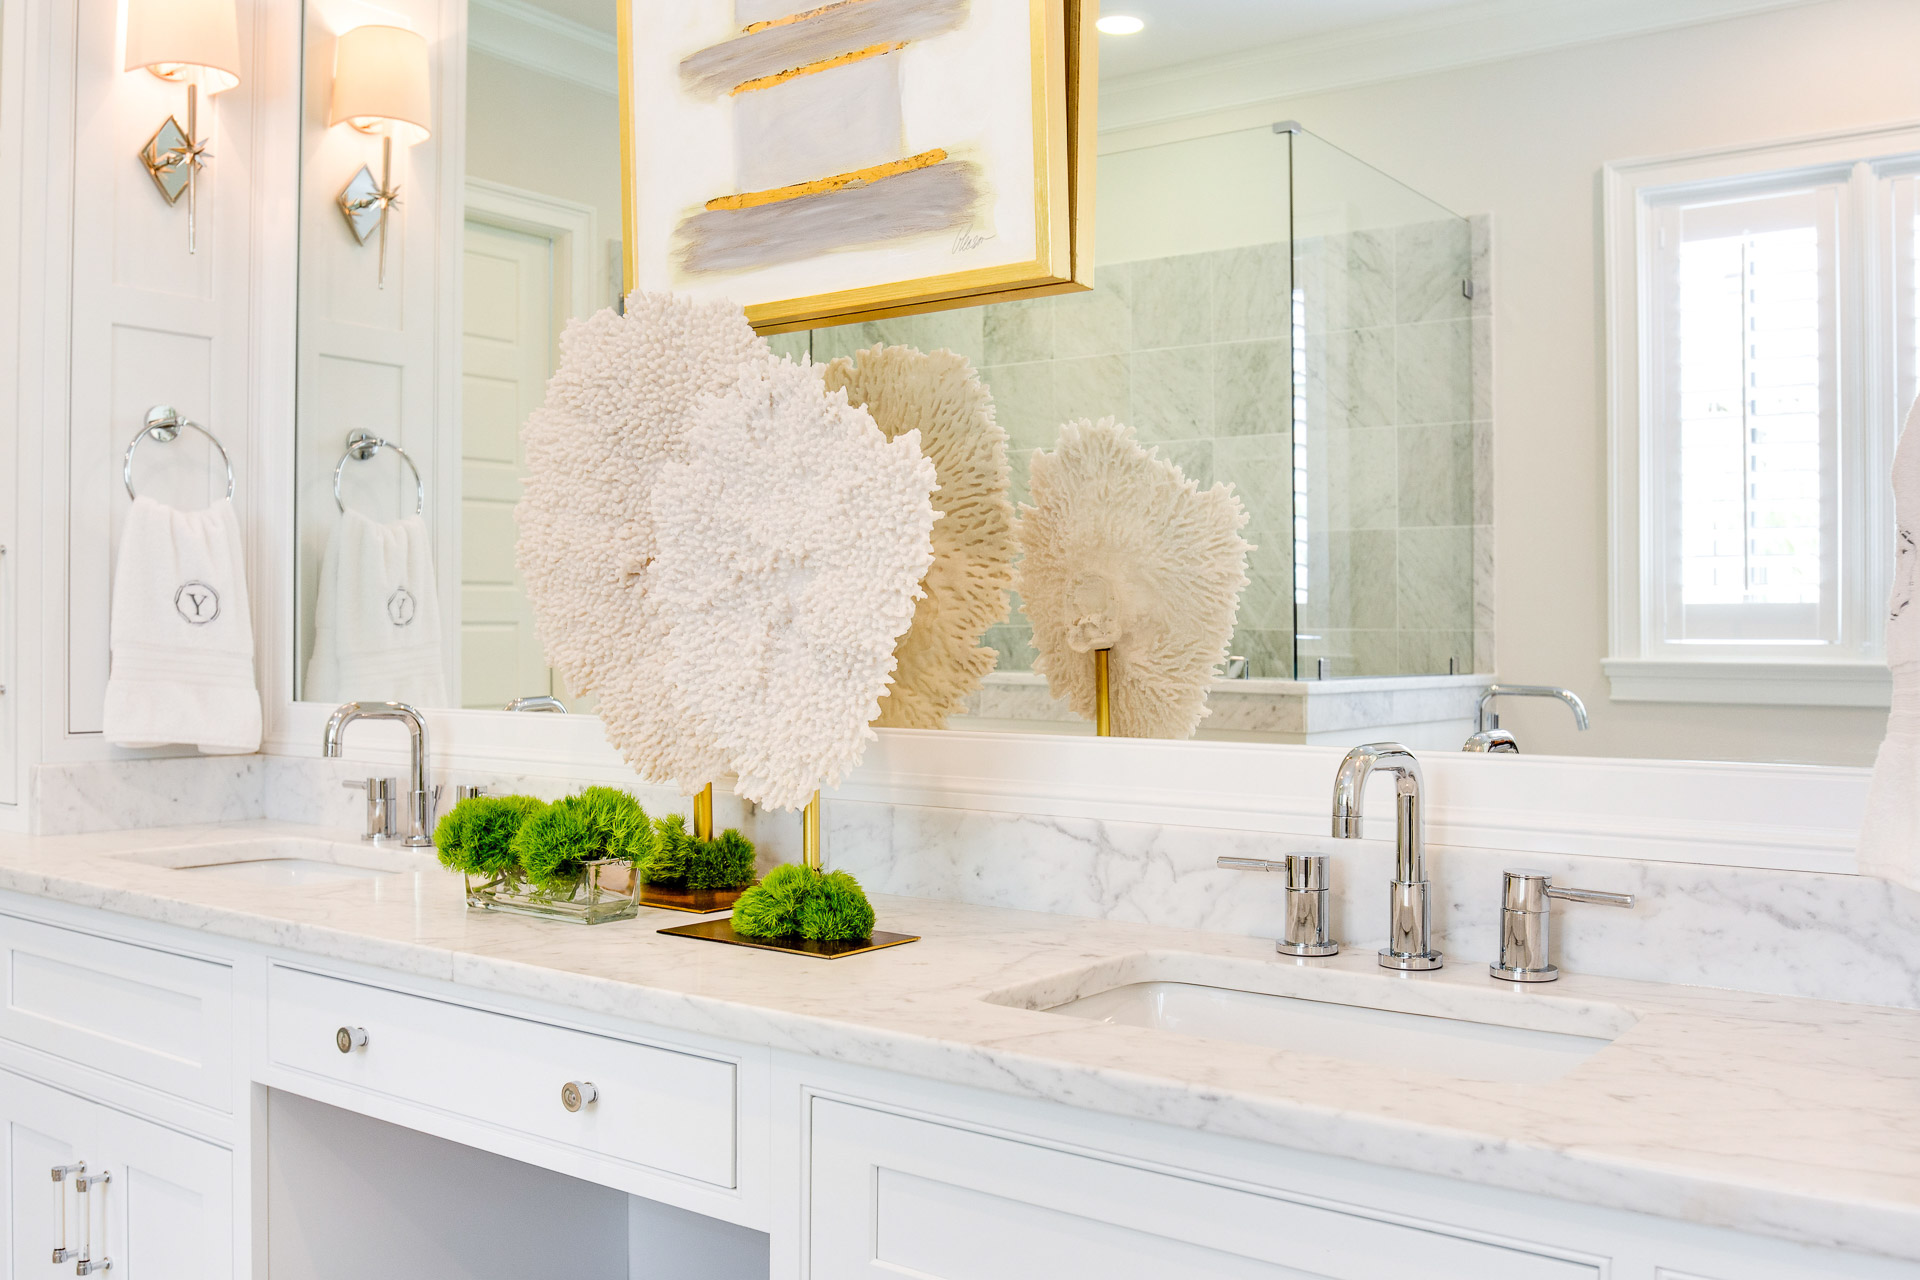 The lucite drawer pulls are from Restoration Hardware.